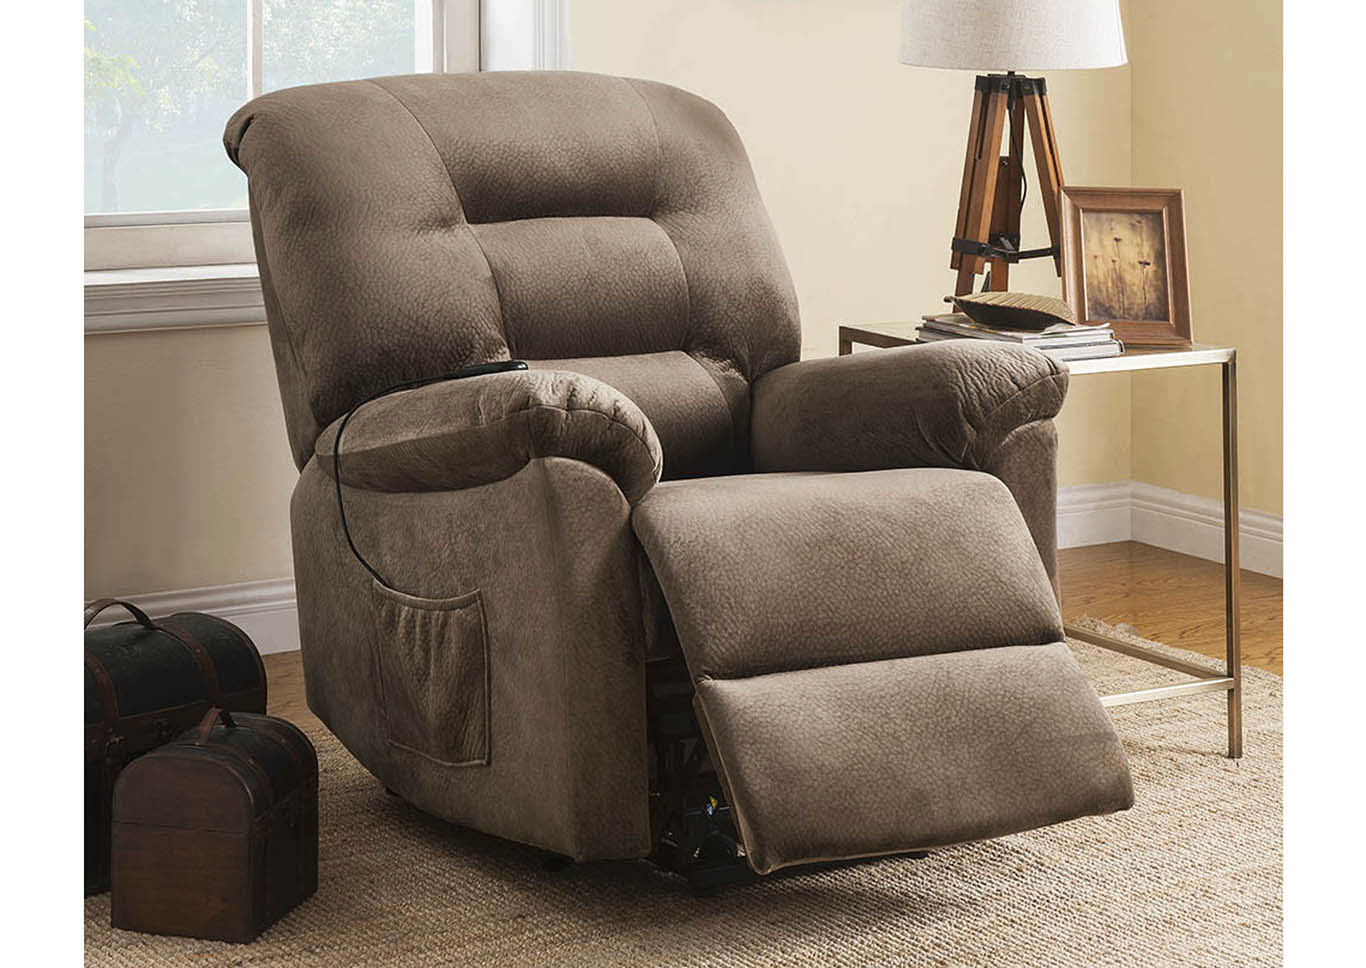 Brown Sugar Power Lift Recliner,Coaster Furniture